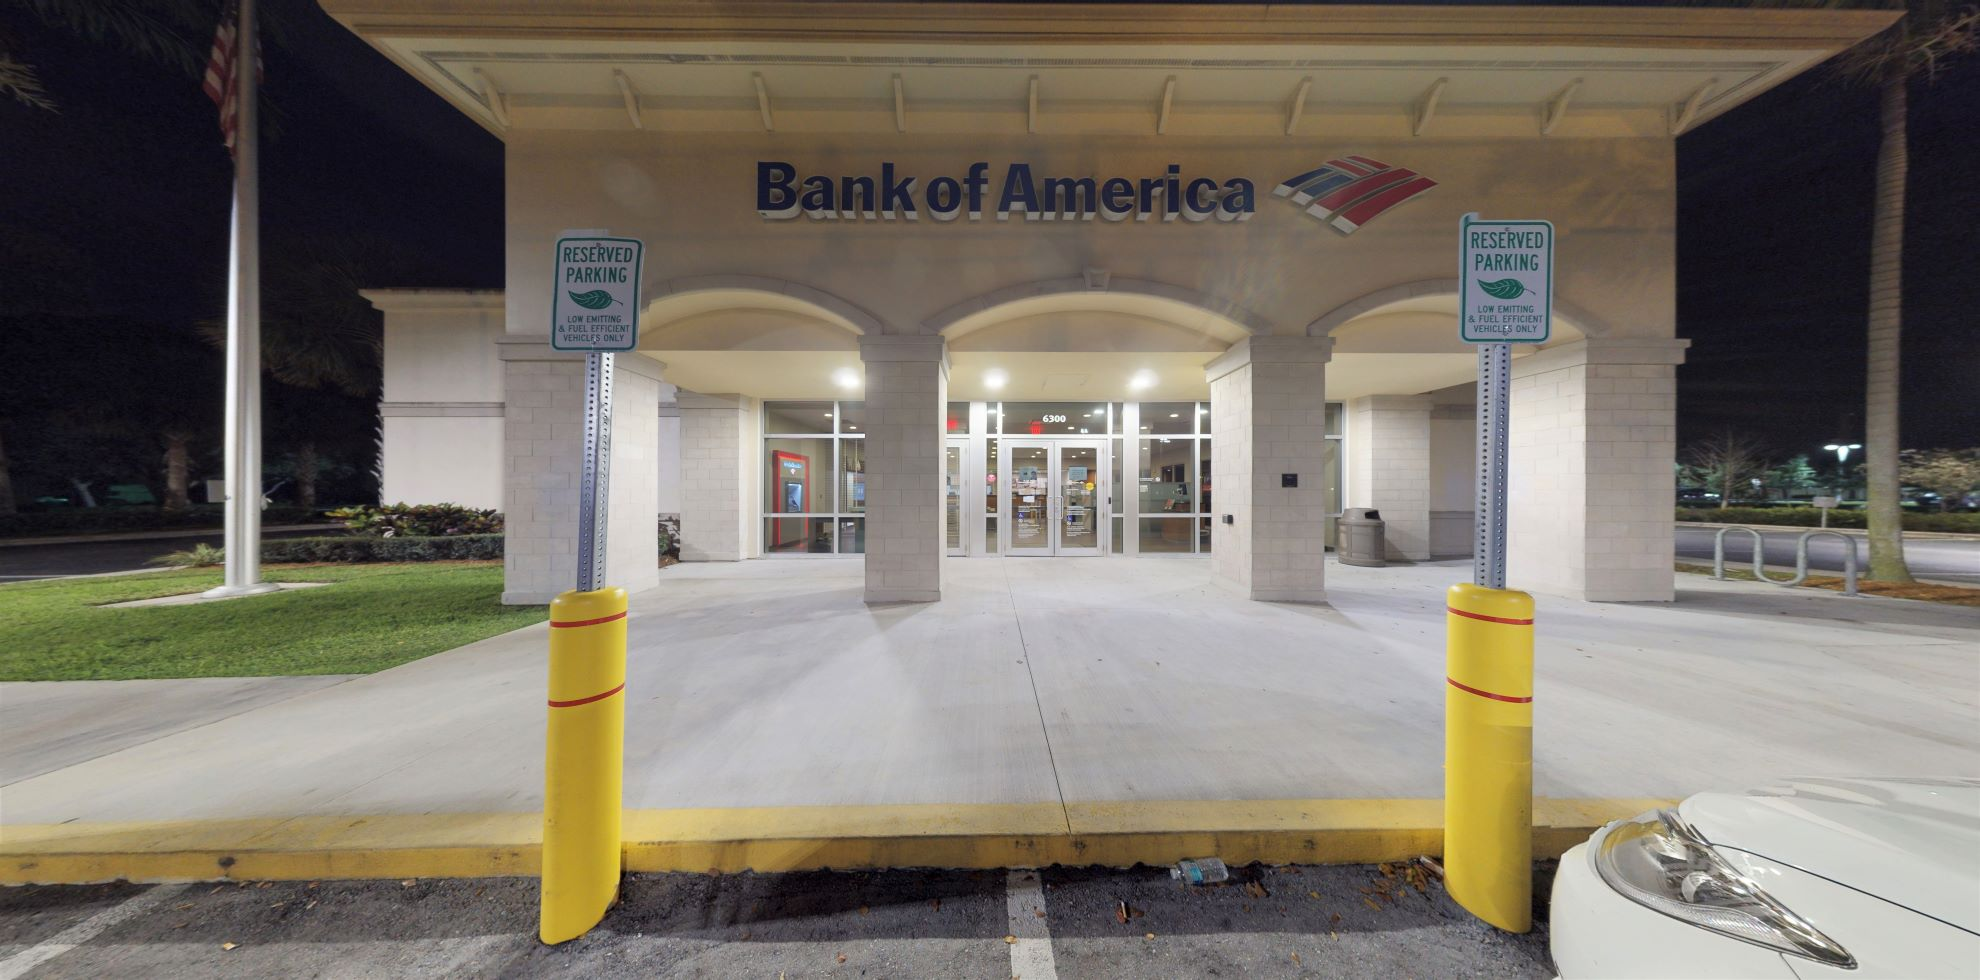 Bank of America financial center with drive-thru ATM   6300 Stirling Rd, Davie, FL 33314